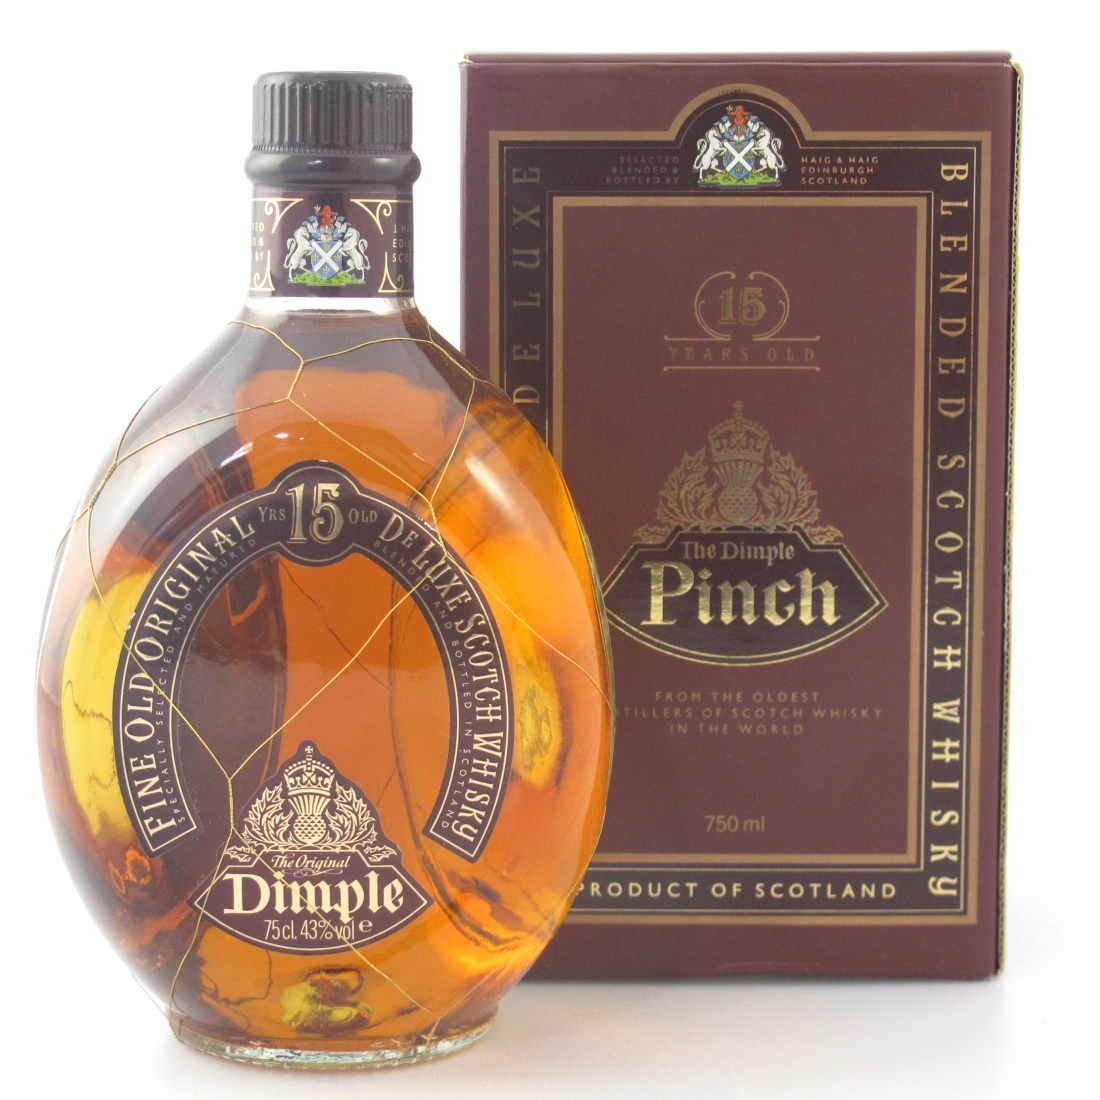 Haig's Dimple Pinch 15 Year Old 75cl / US Import